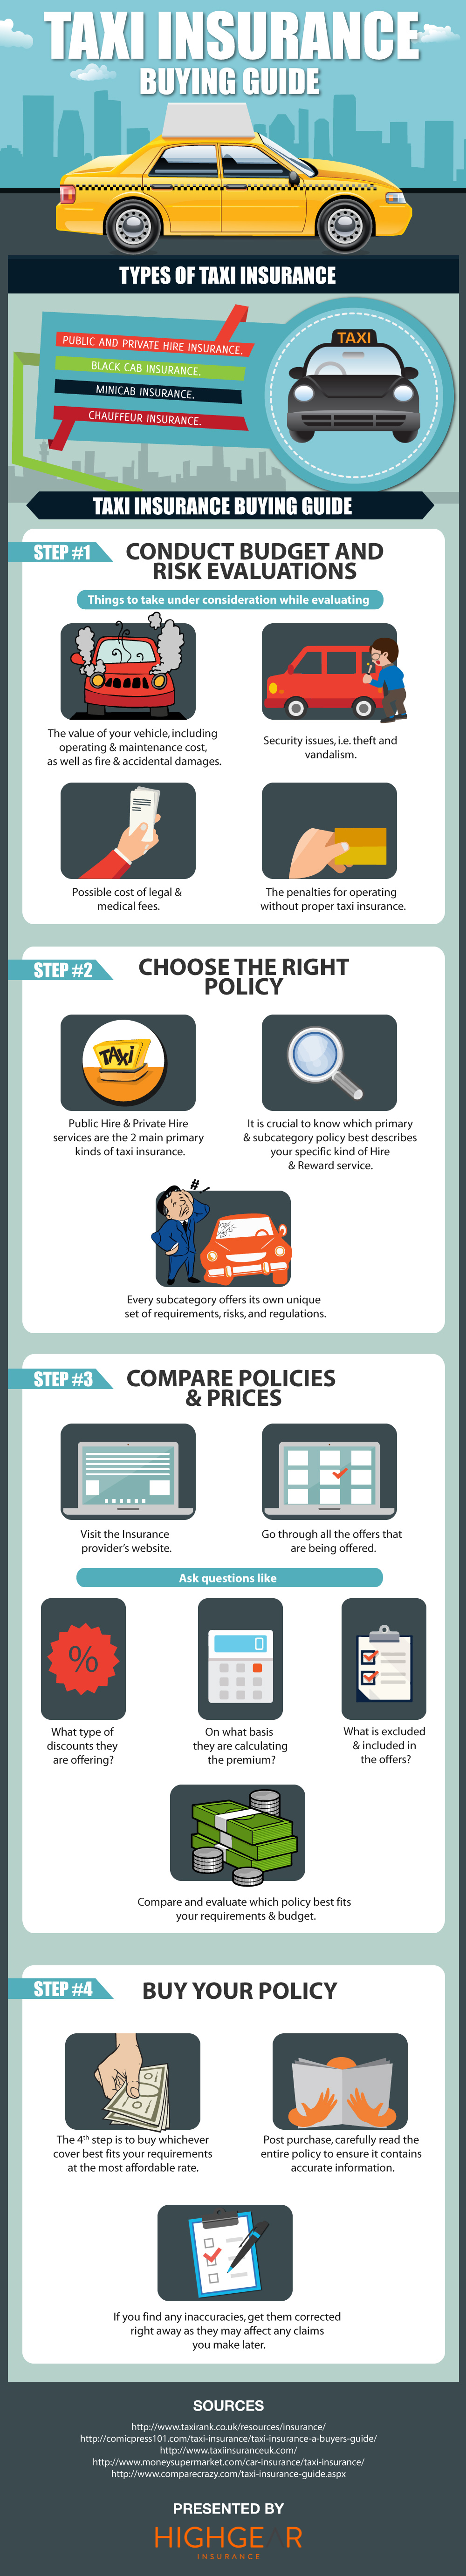 Taxi Insurance Buying Guide Infographic